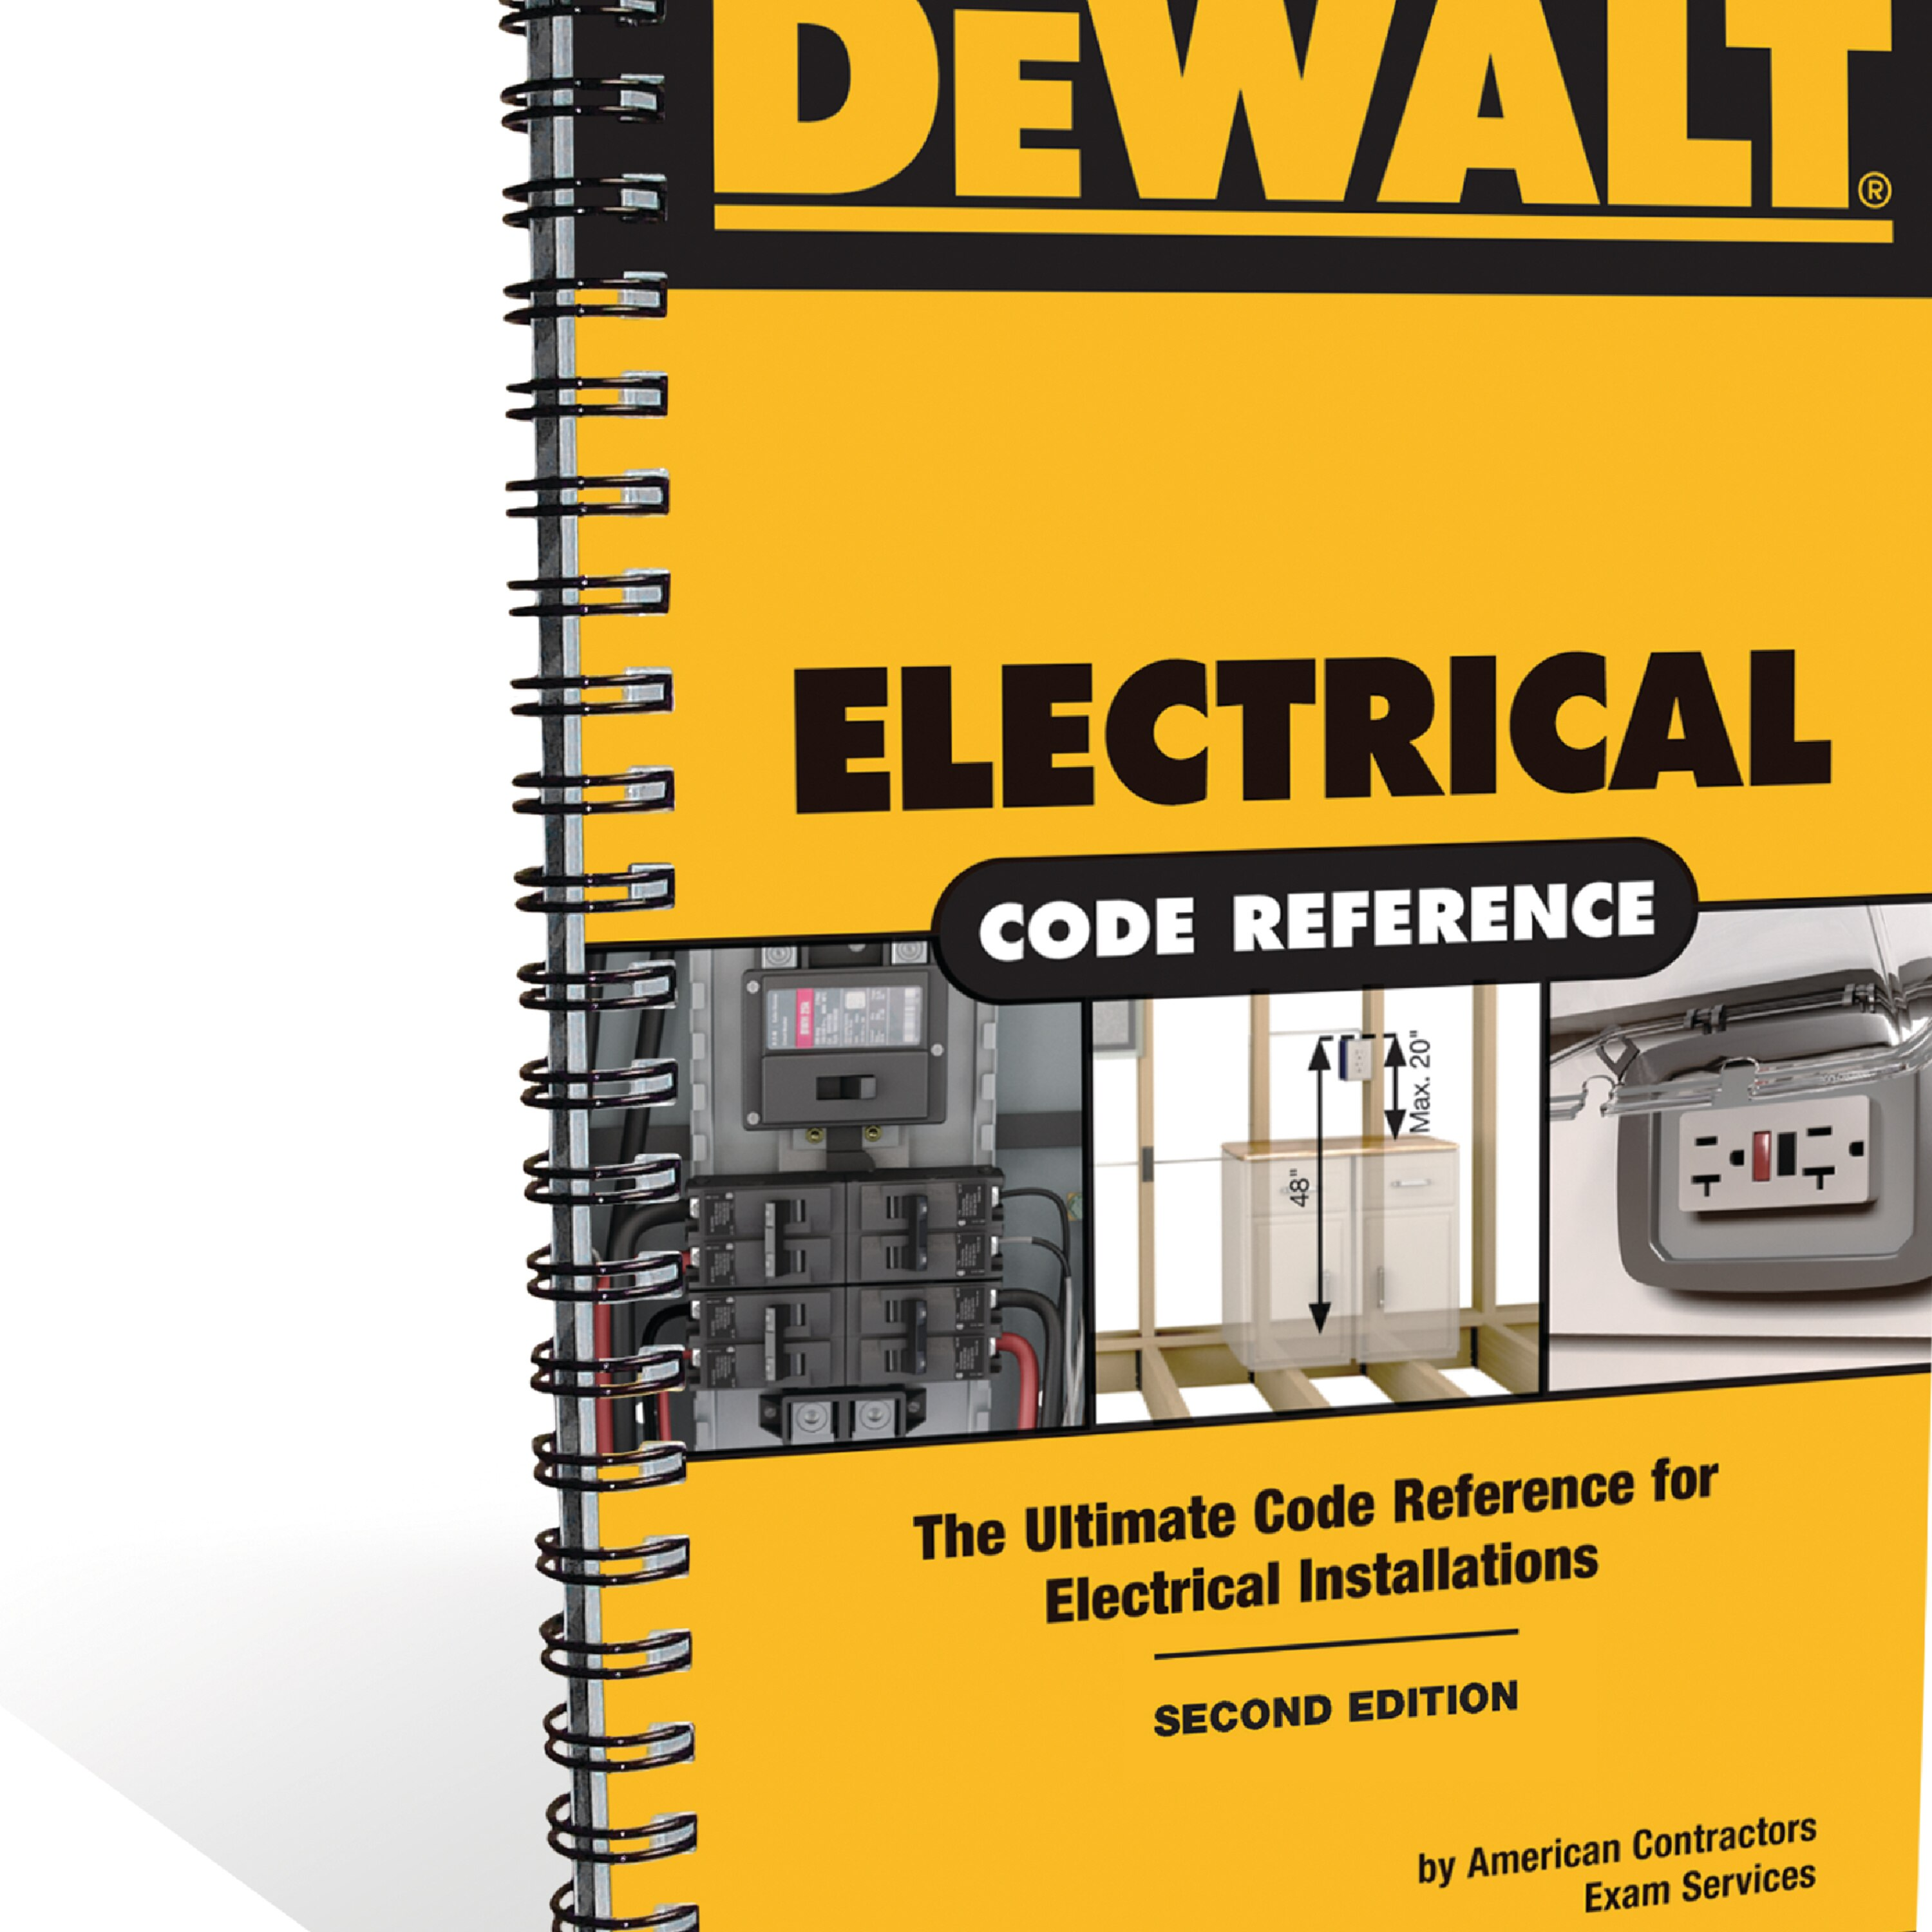 Electrical Code Reference Based On The National